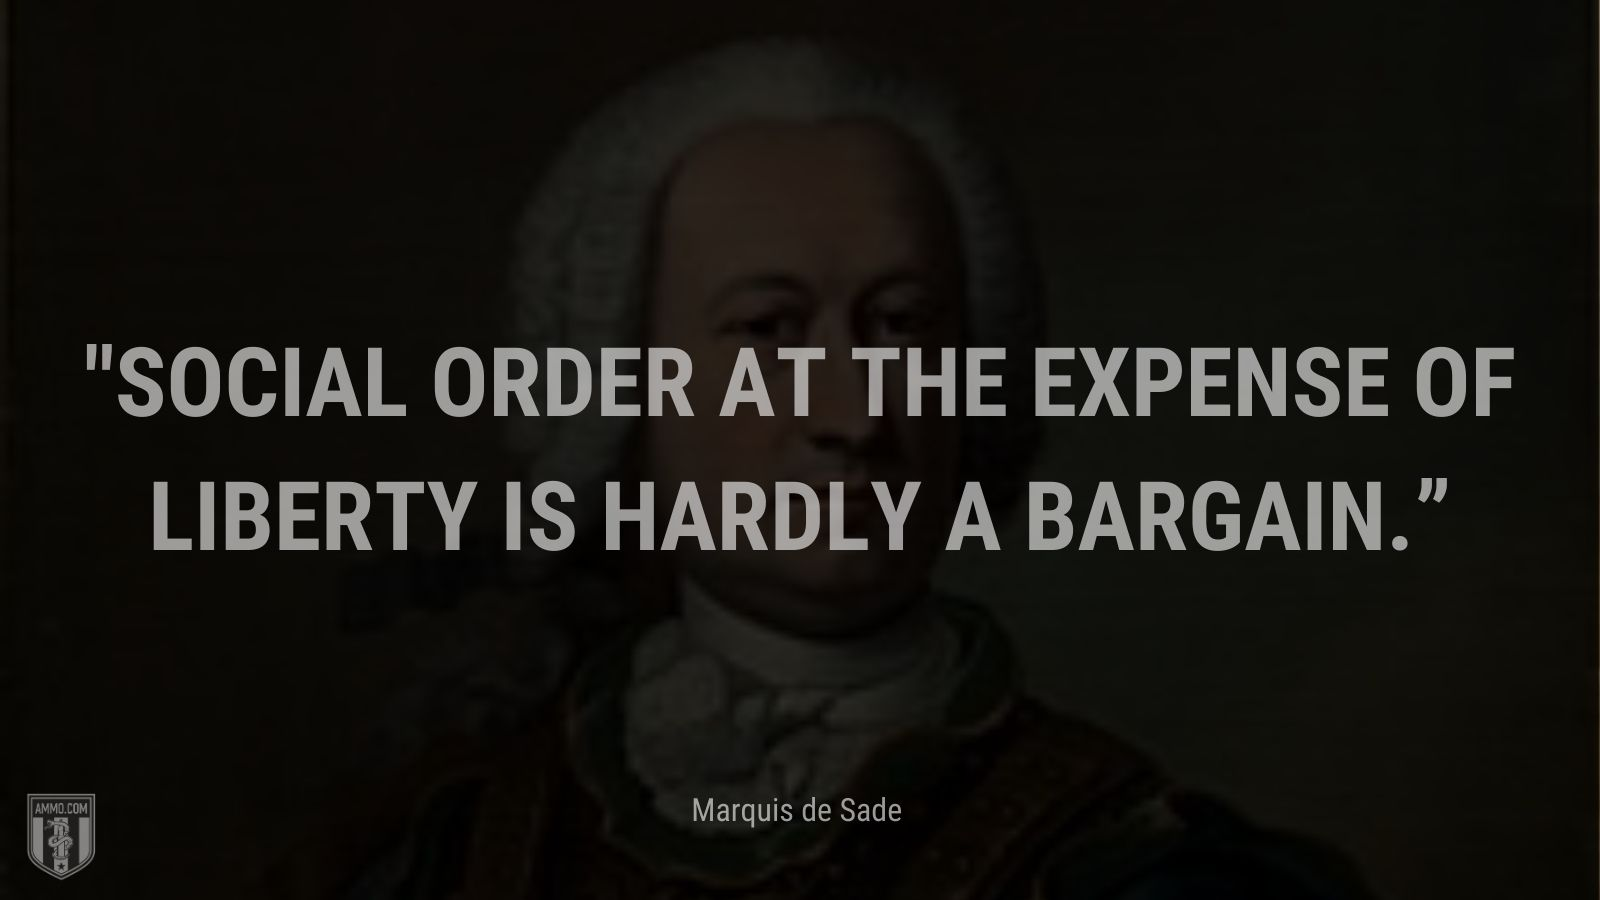 """""""Social order at the expense of liberty is hardly a bargain."""" - Marquis de Sade"""